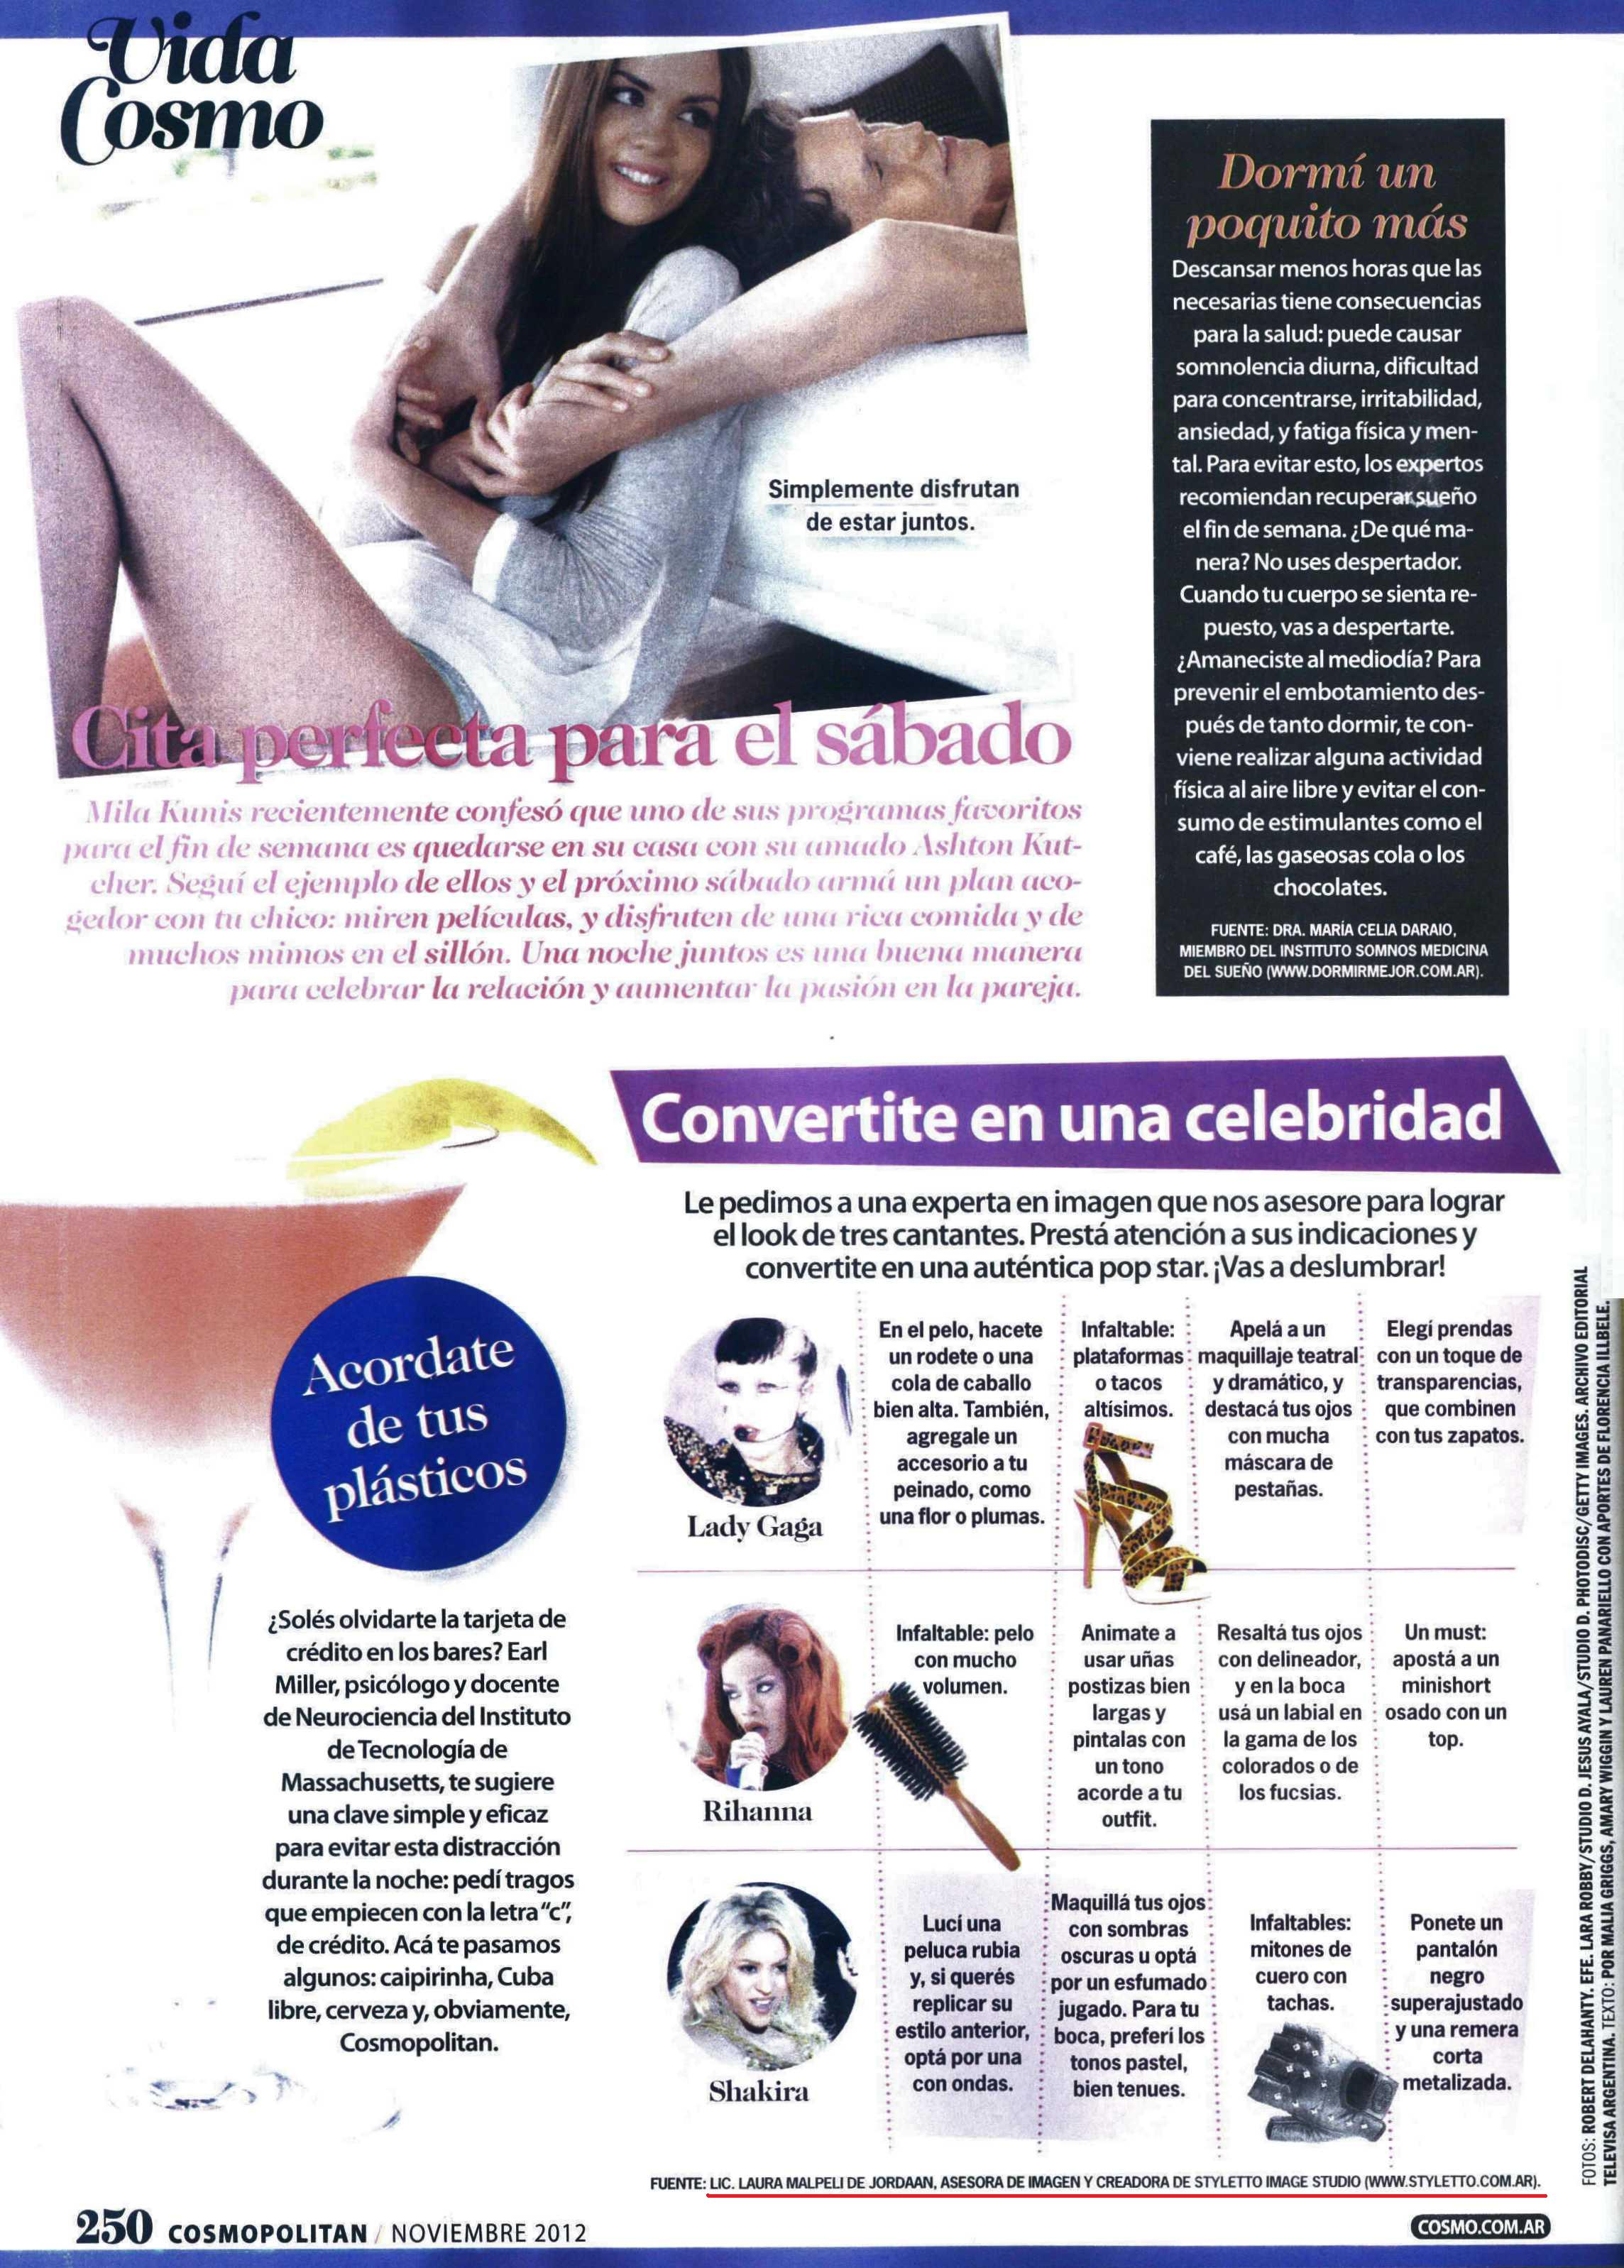 7 11 2012 Cosmo pag. 250